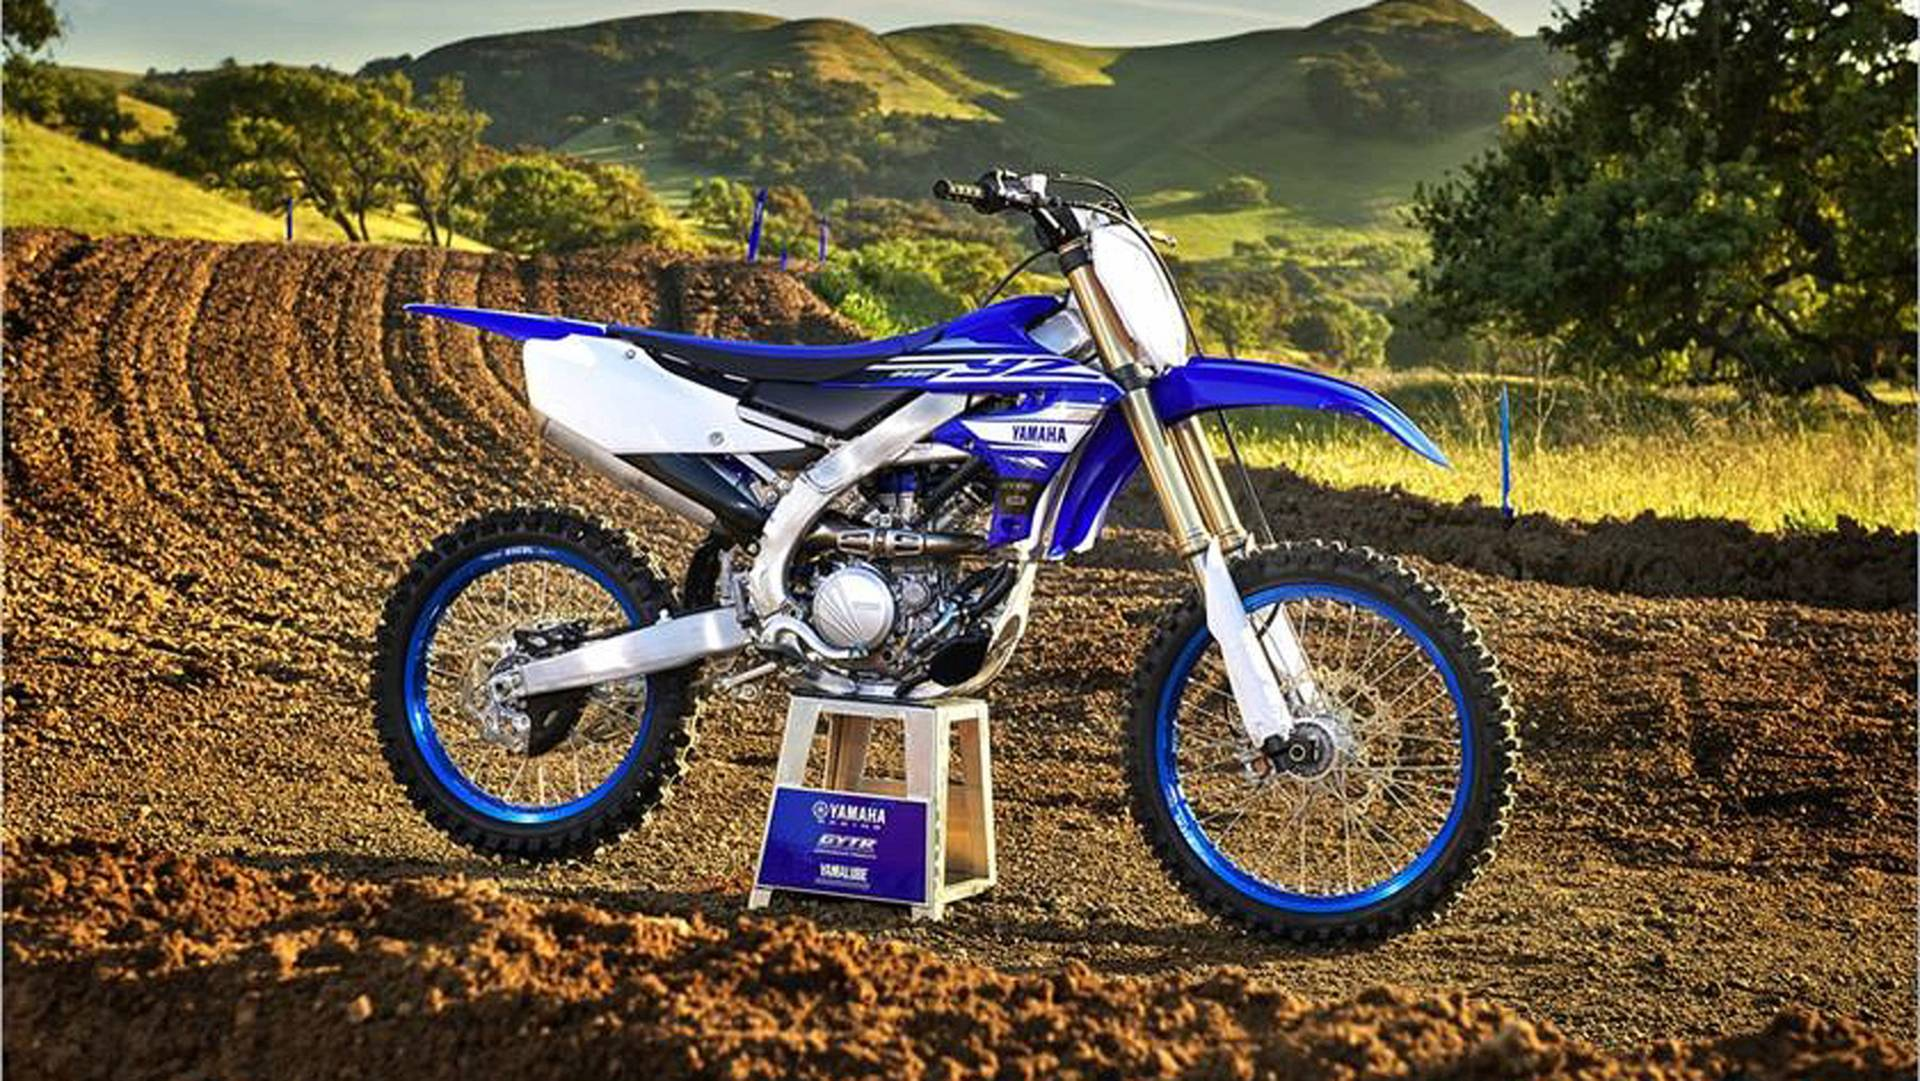 Wondrous 2019 Yamaha Yz250F New From The Ground Up Caraccident5 Cool Chair Designs And Ideas Caraccident5Info